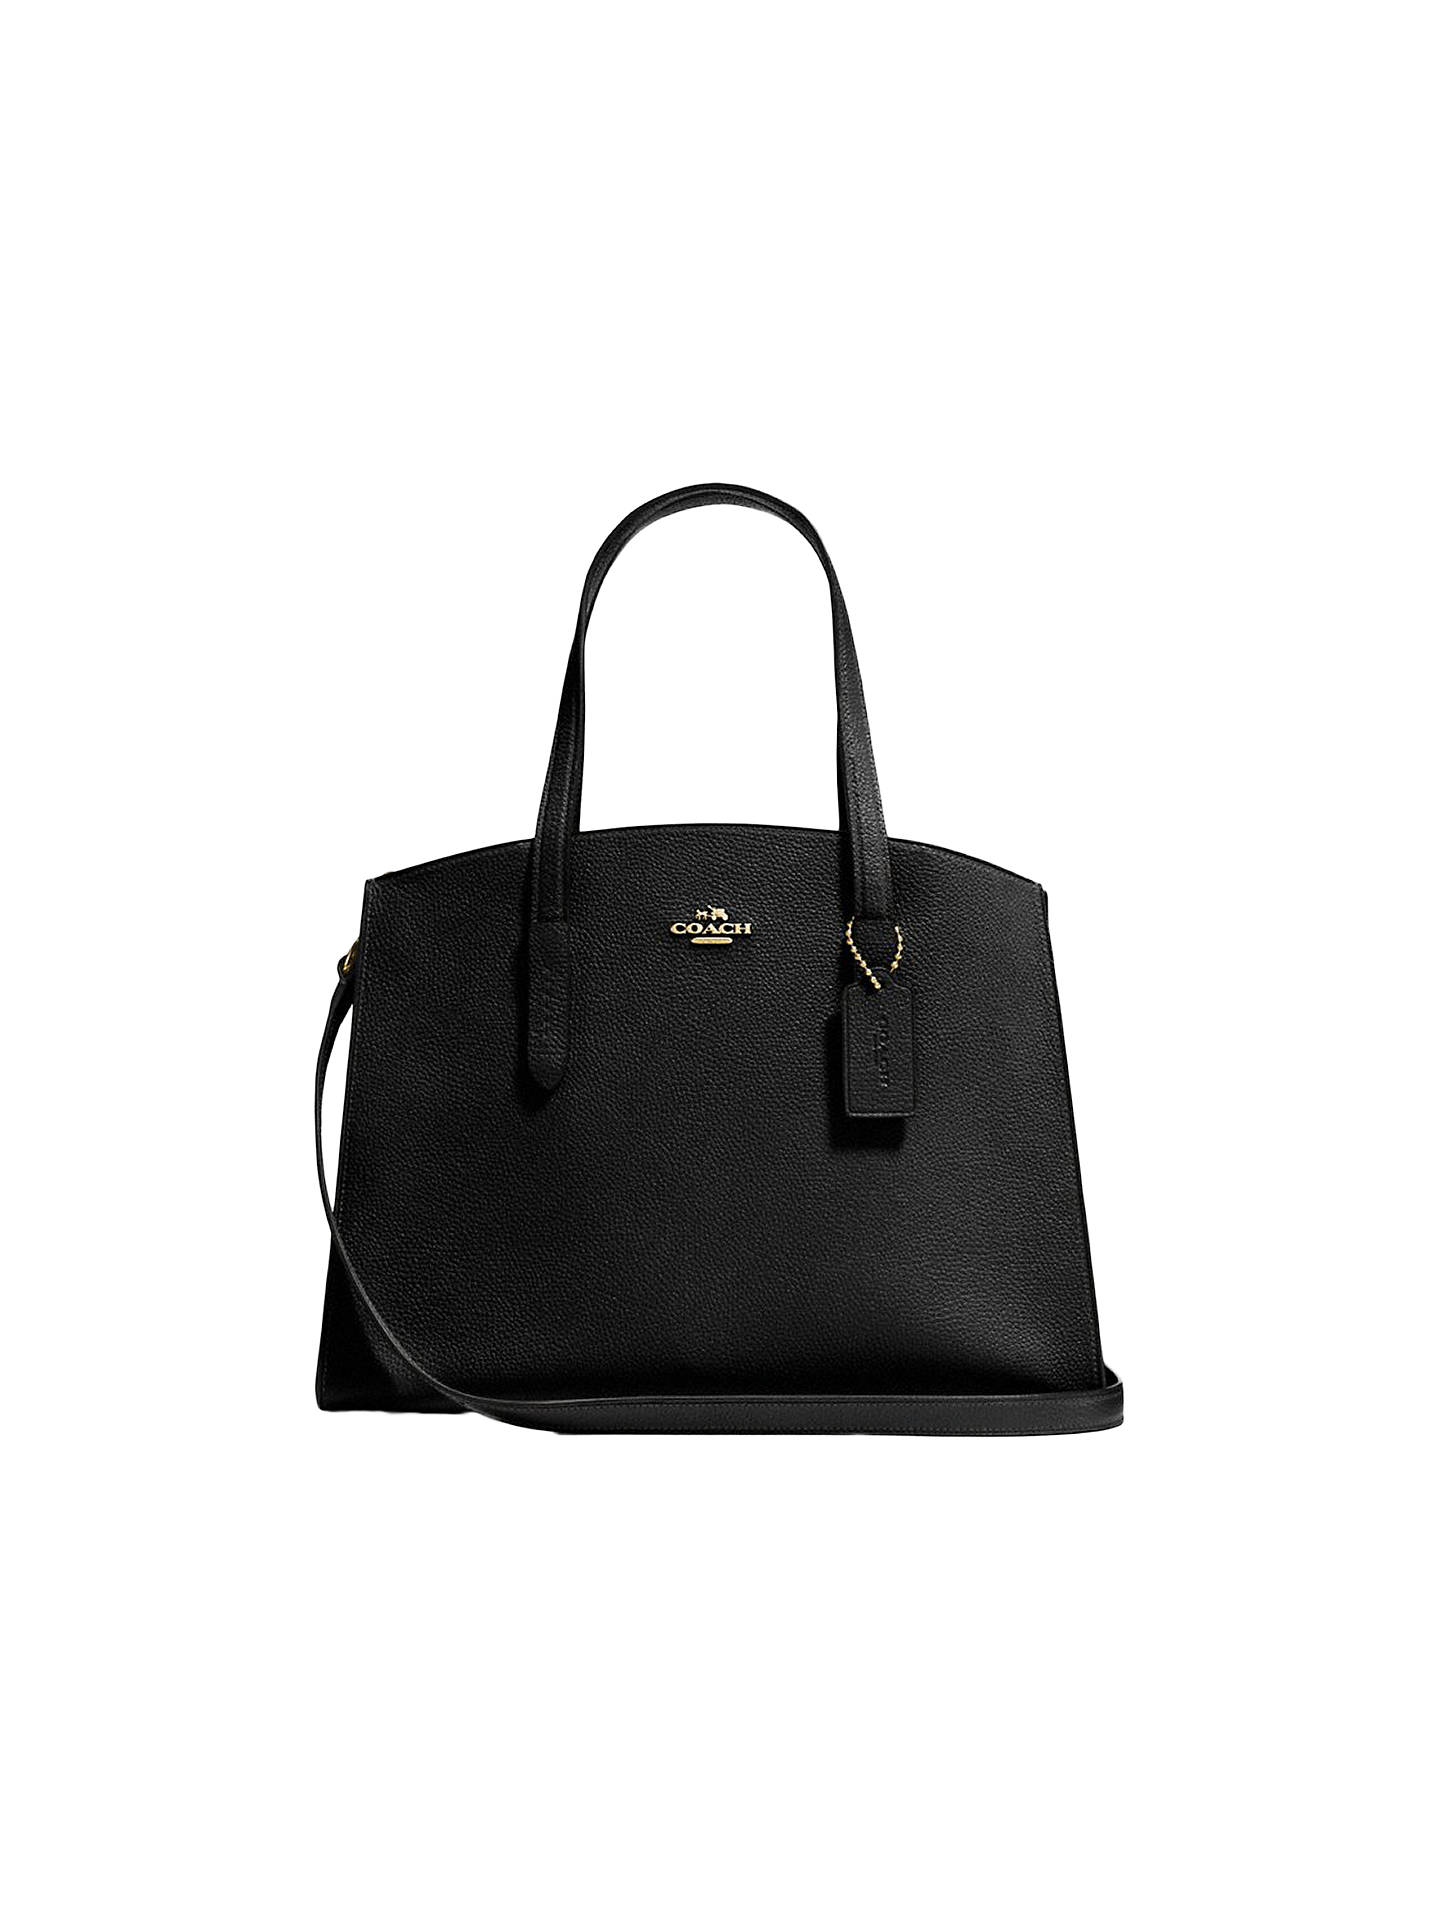 3271105fca3ed0 Buy Coach Charlie Leather Carryall Tote Bag, Black/Yellow Online at  johnlewis.com ...